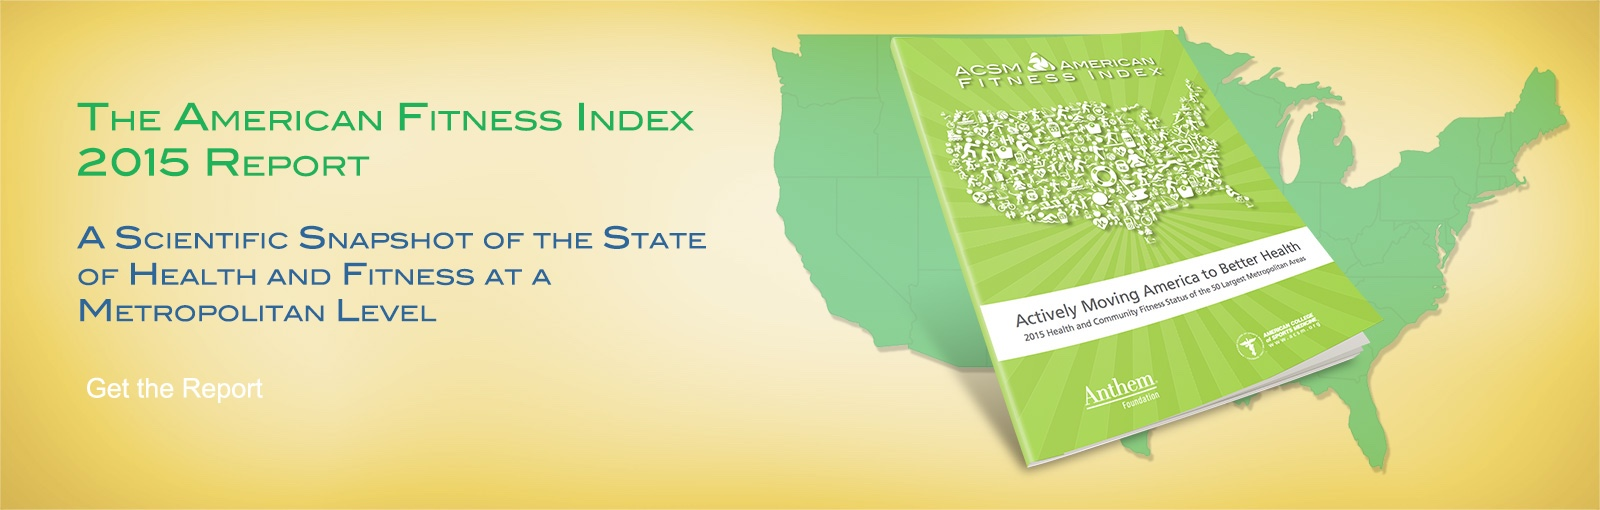 American Fitness Index 2015